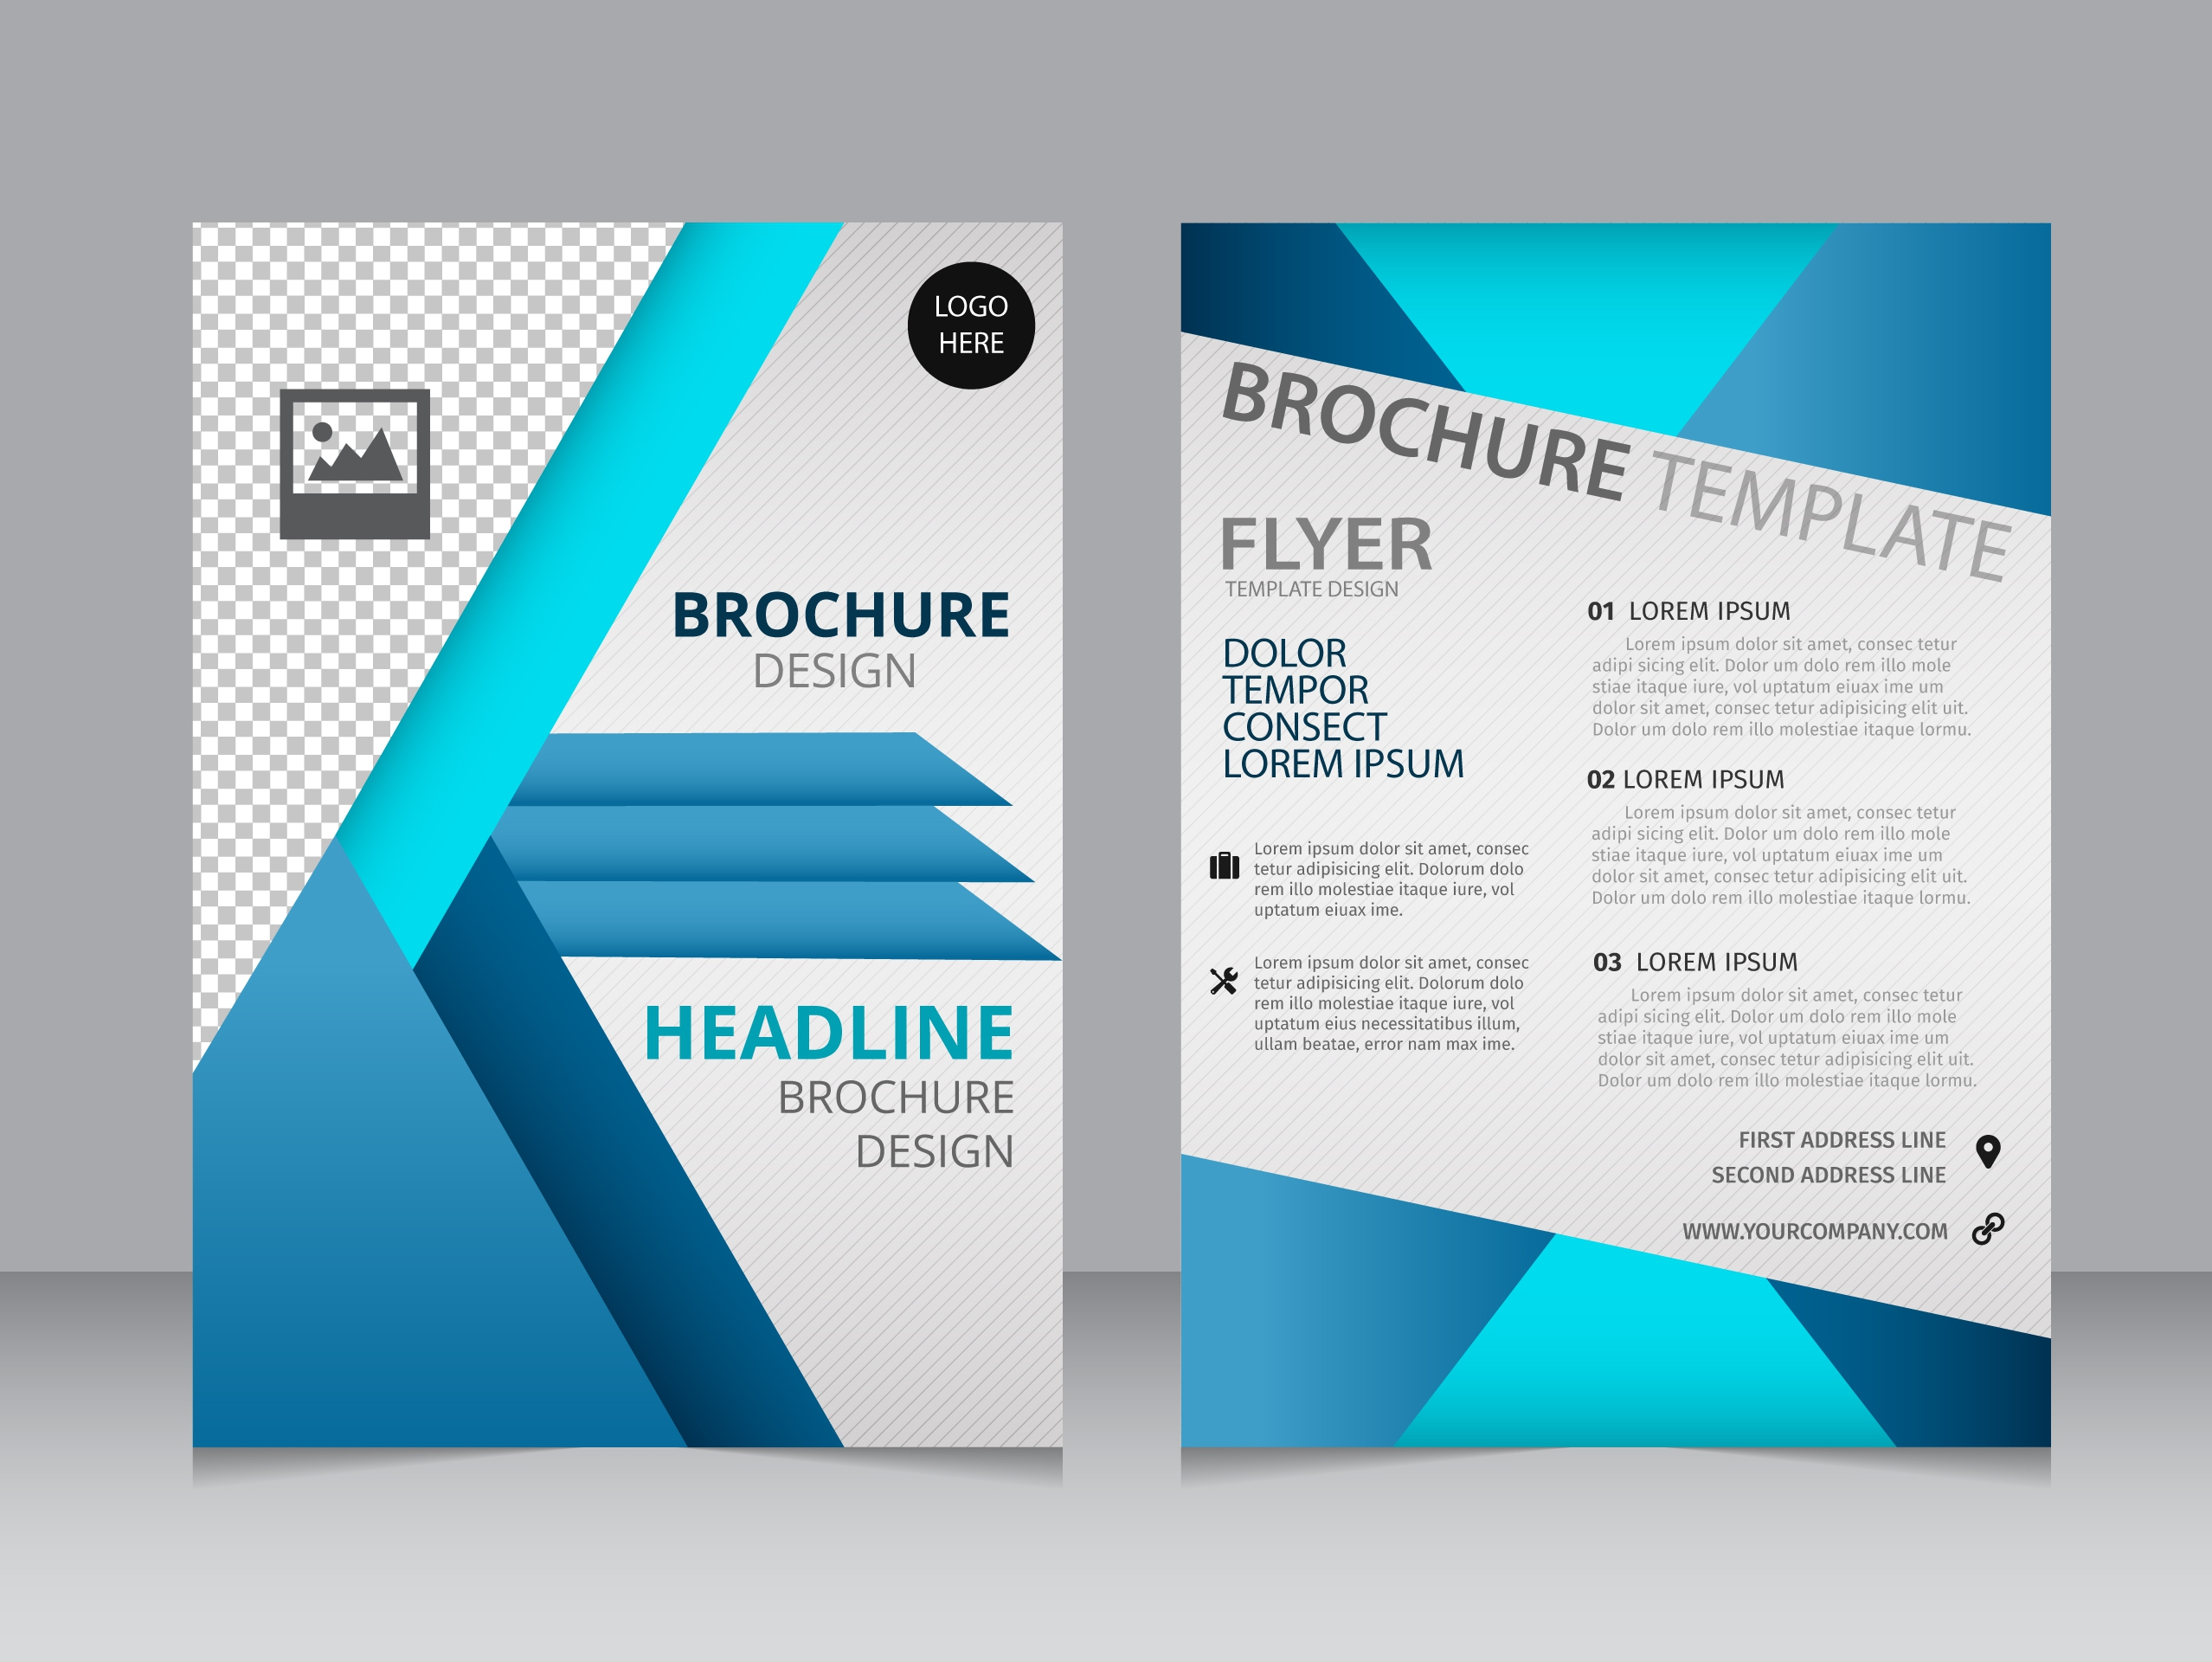 sample brochures templates - 11 free sample travel brochure templates printable samples